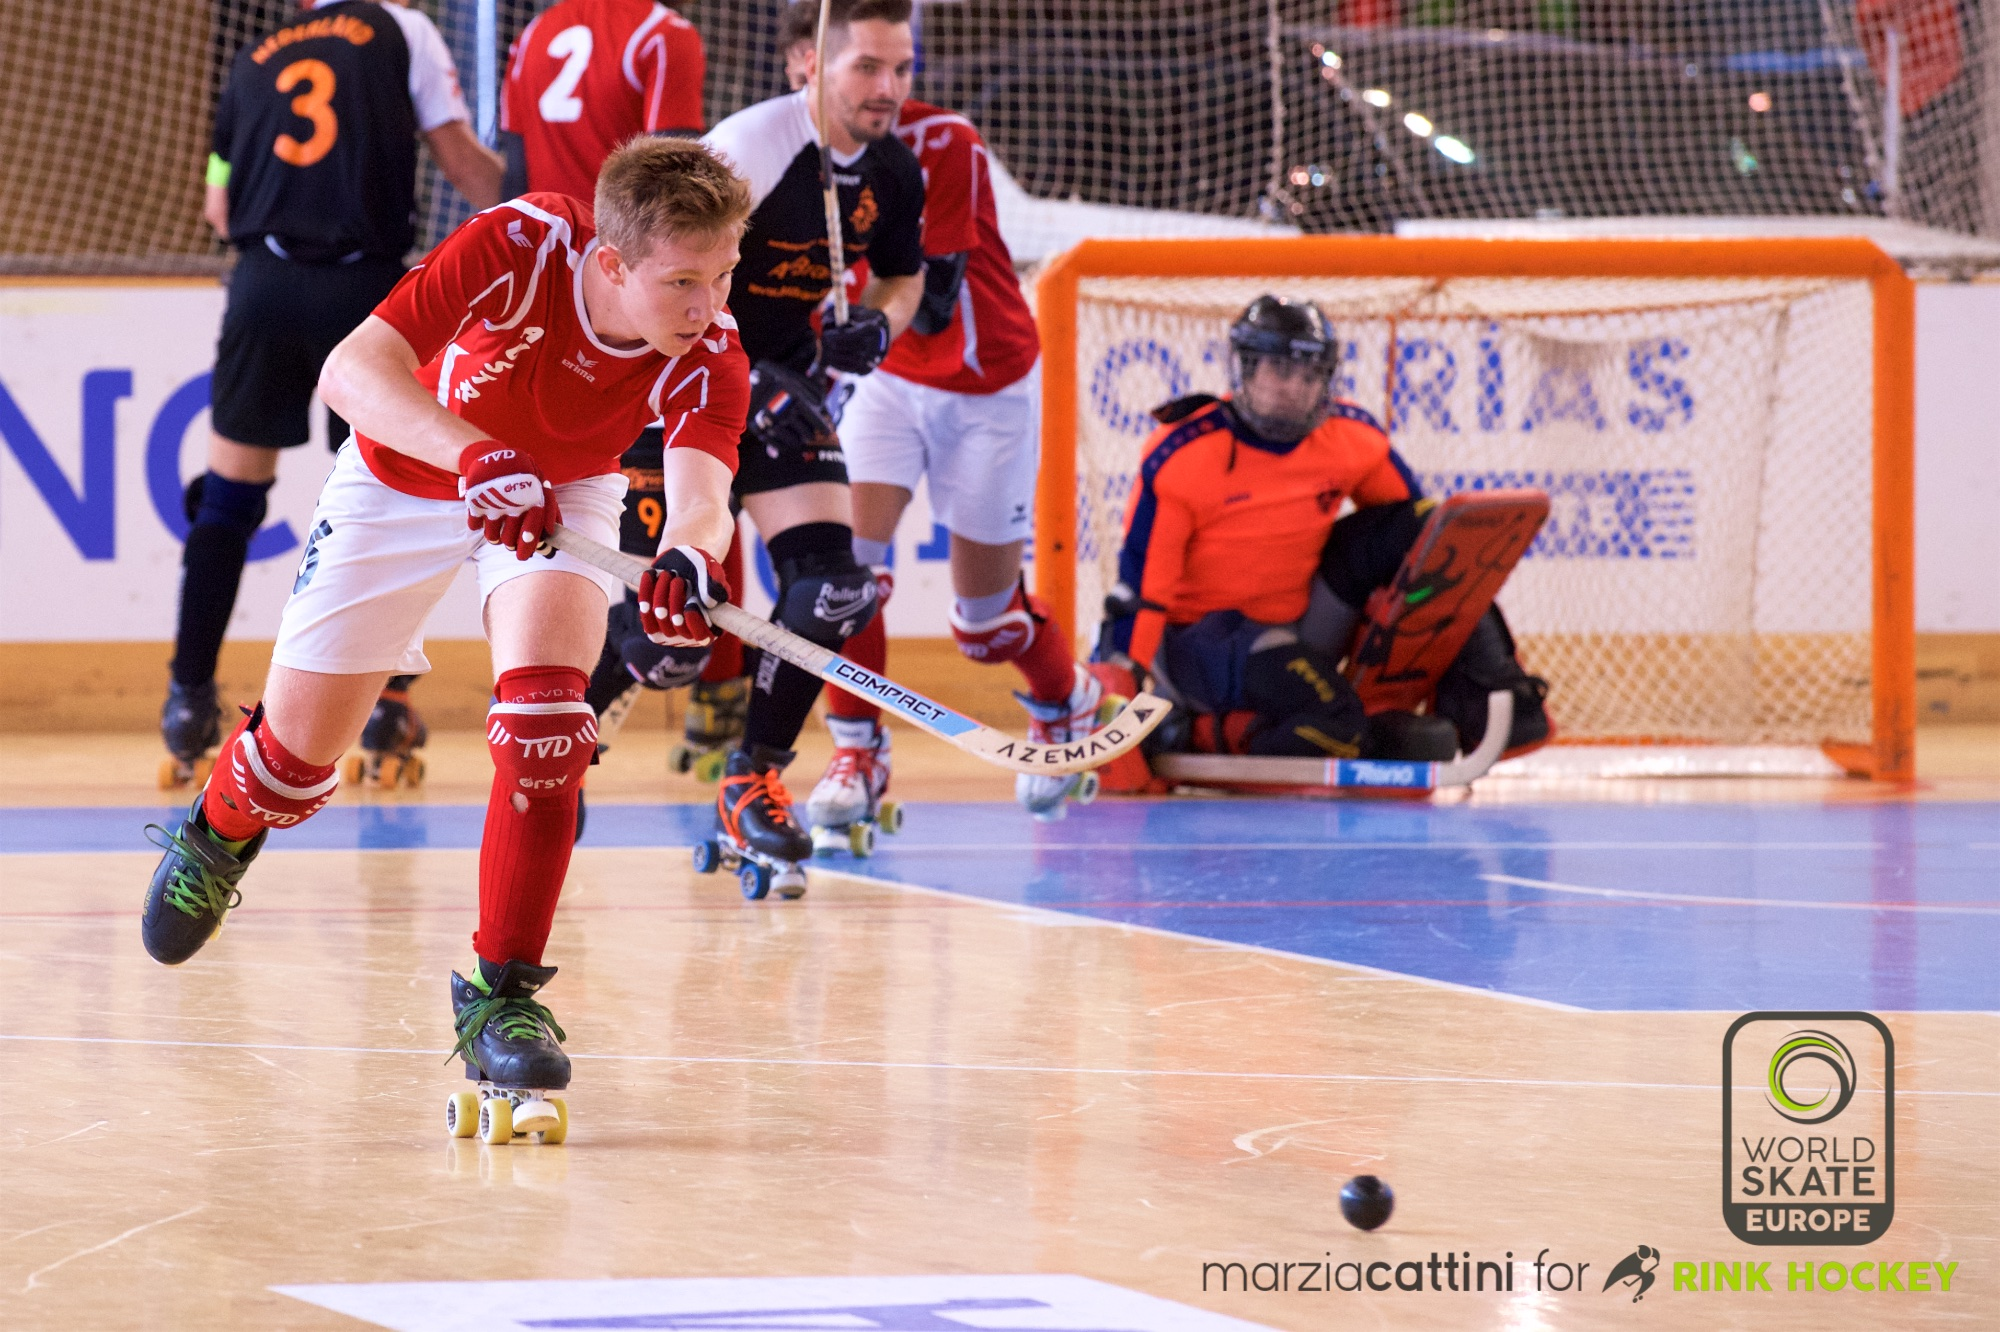 PHOTOS – 22/07/2018 - EUROHOCKEY CORUNA 2018 - Match #36 - Netherlands x Austria – Photos by Marzia Cattini